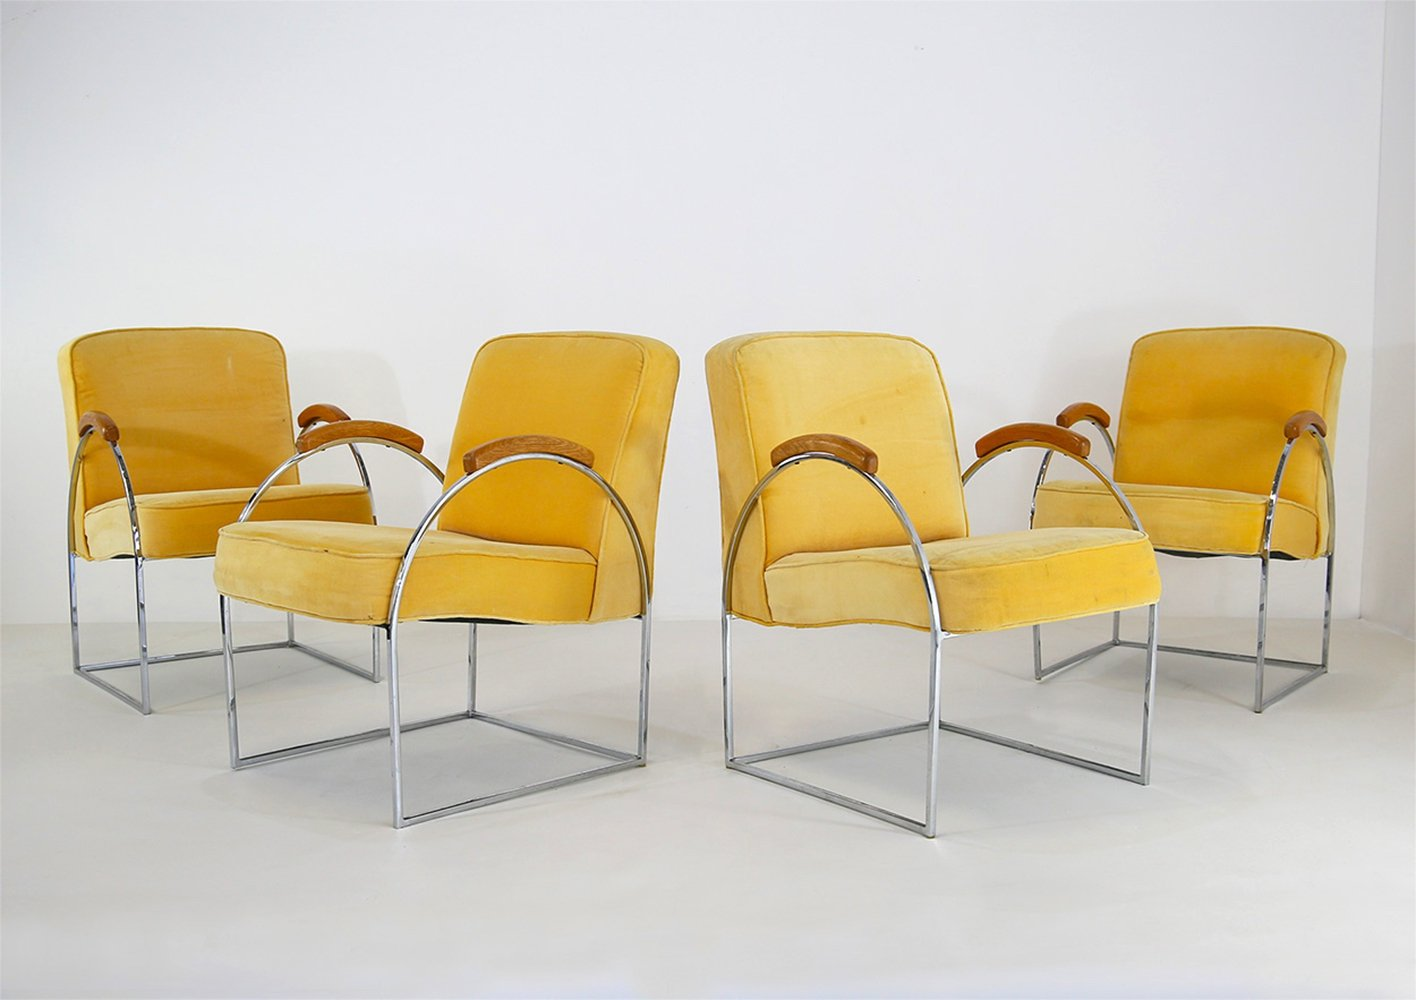 Set of 4 Milo Baughman chairs, 1970s